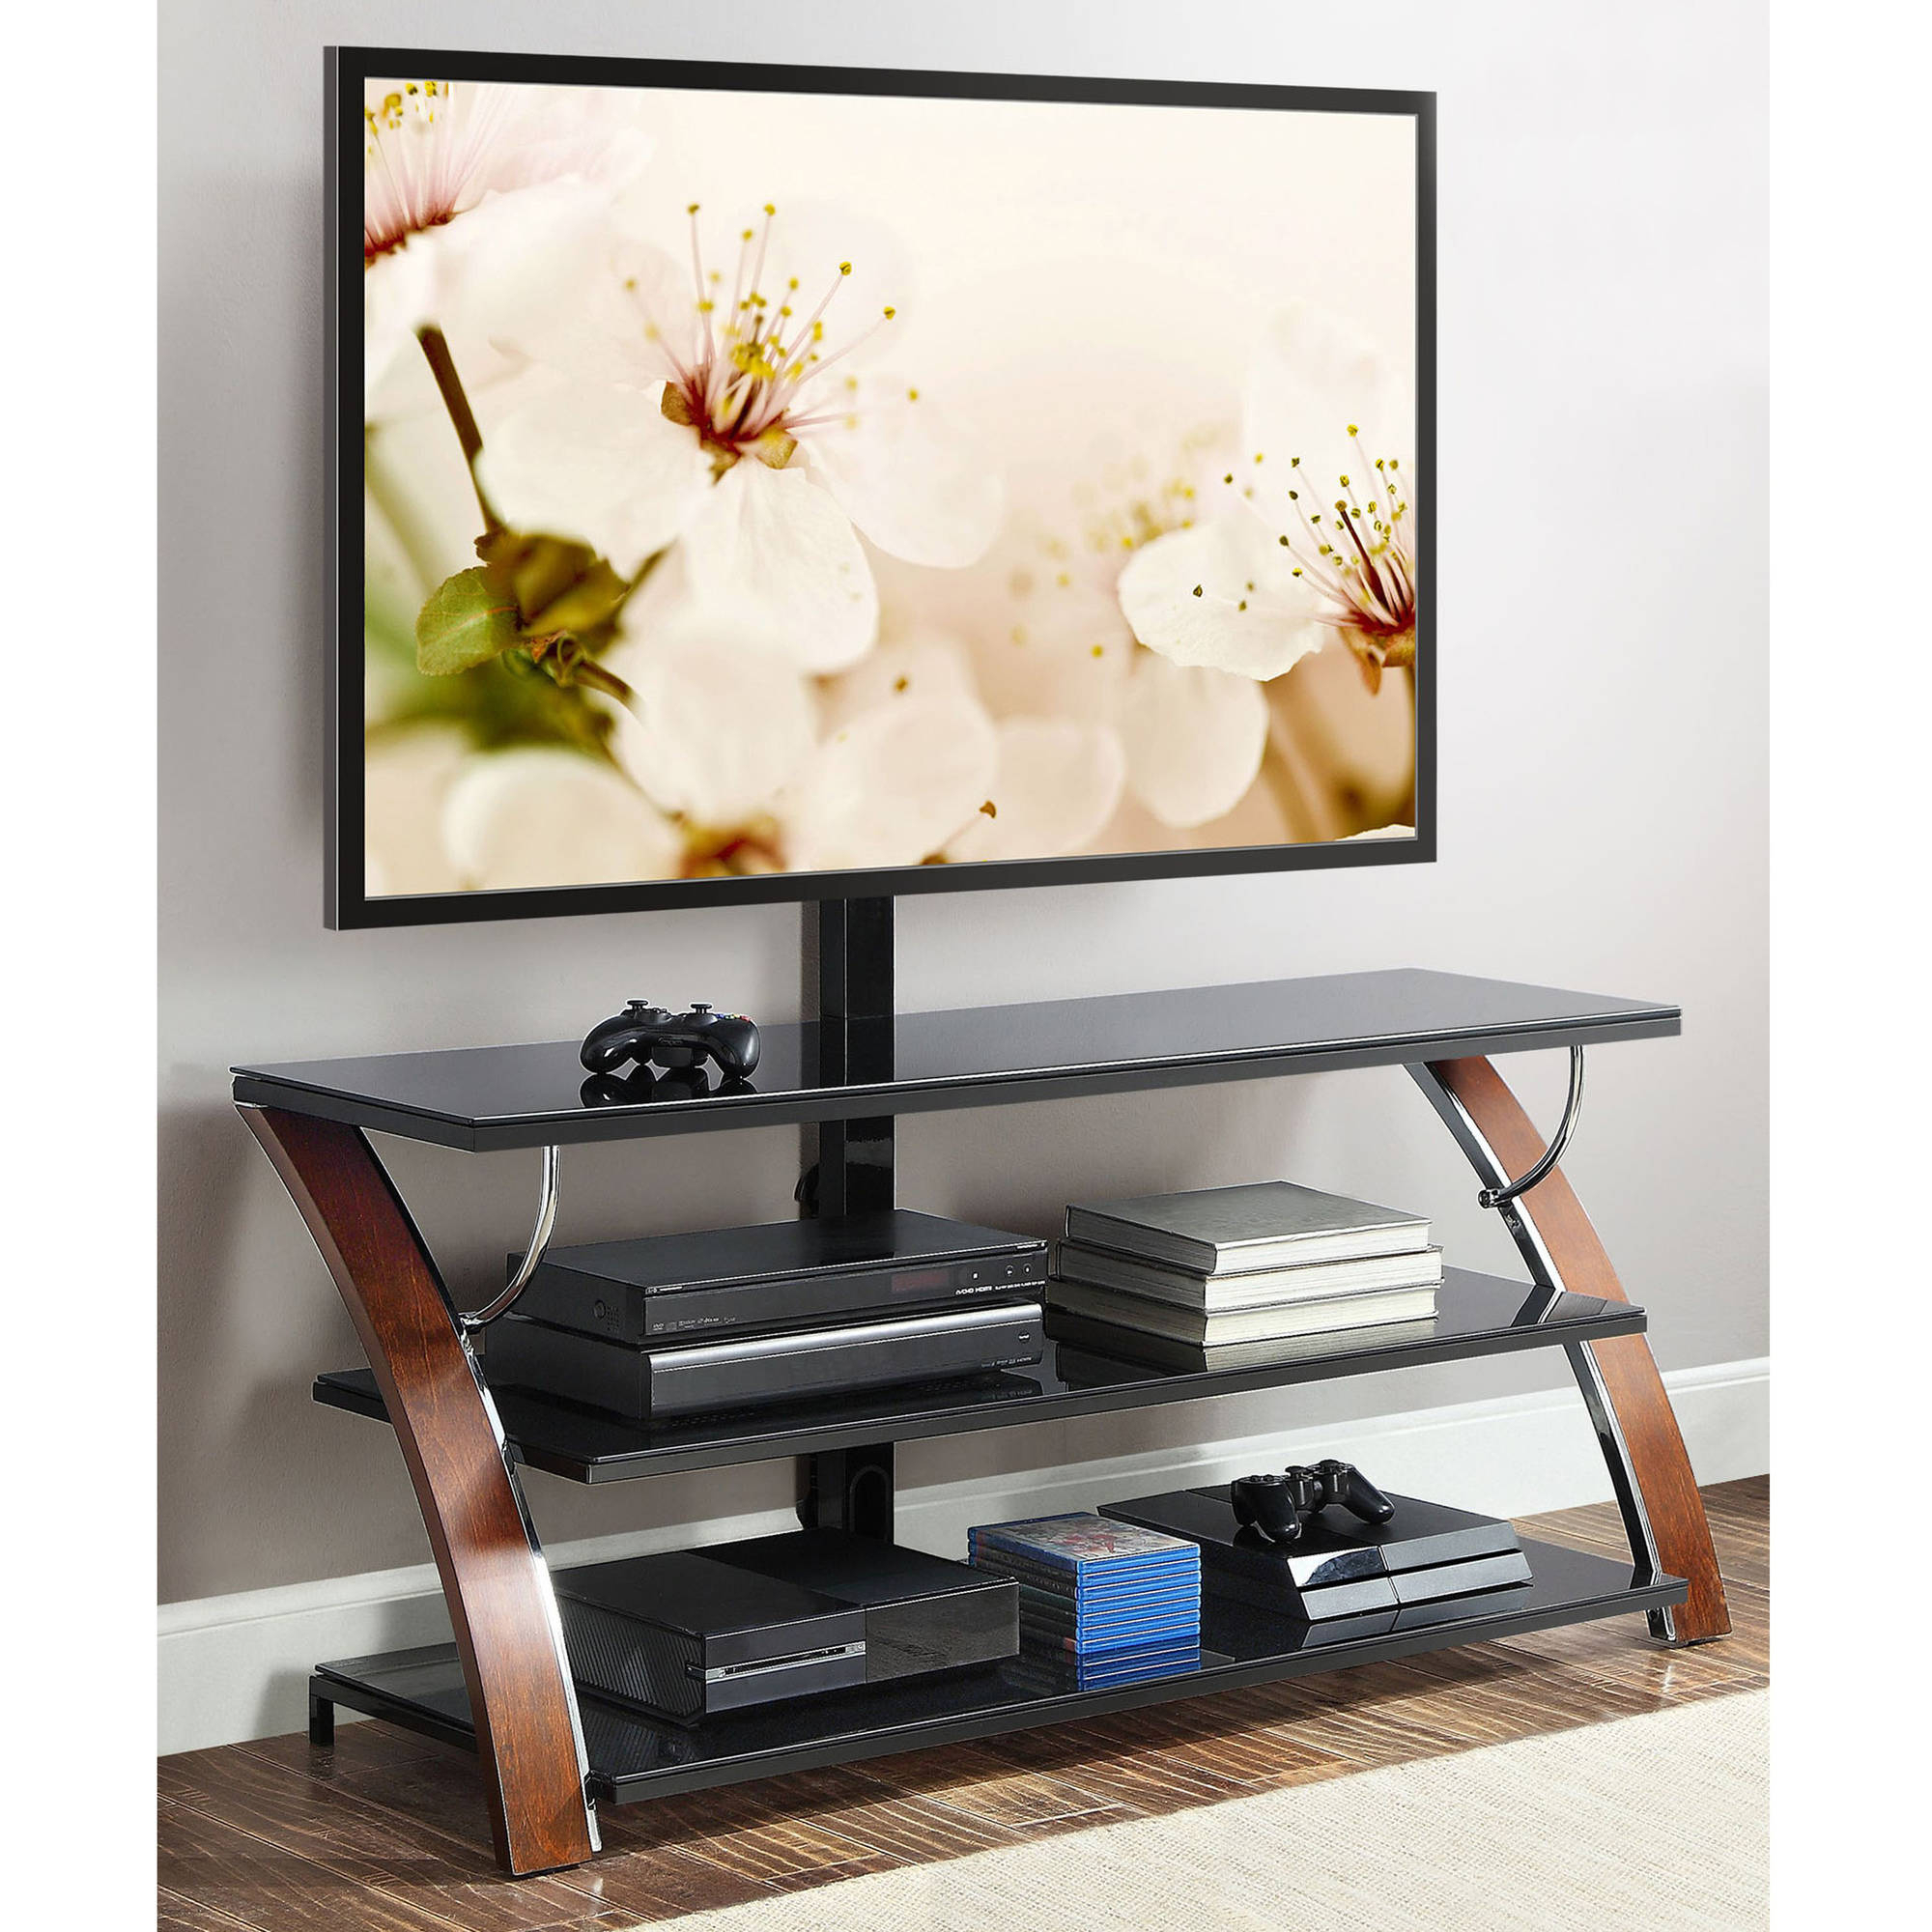 Whalen Payton Brown Cherry 3 In 1 Flat Panel Tv Stand For Tvs Up To With Regard To 2017 Contemporary Tv Stands For Flat Screens (View 15 of 20)